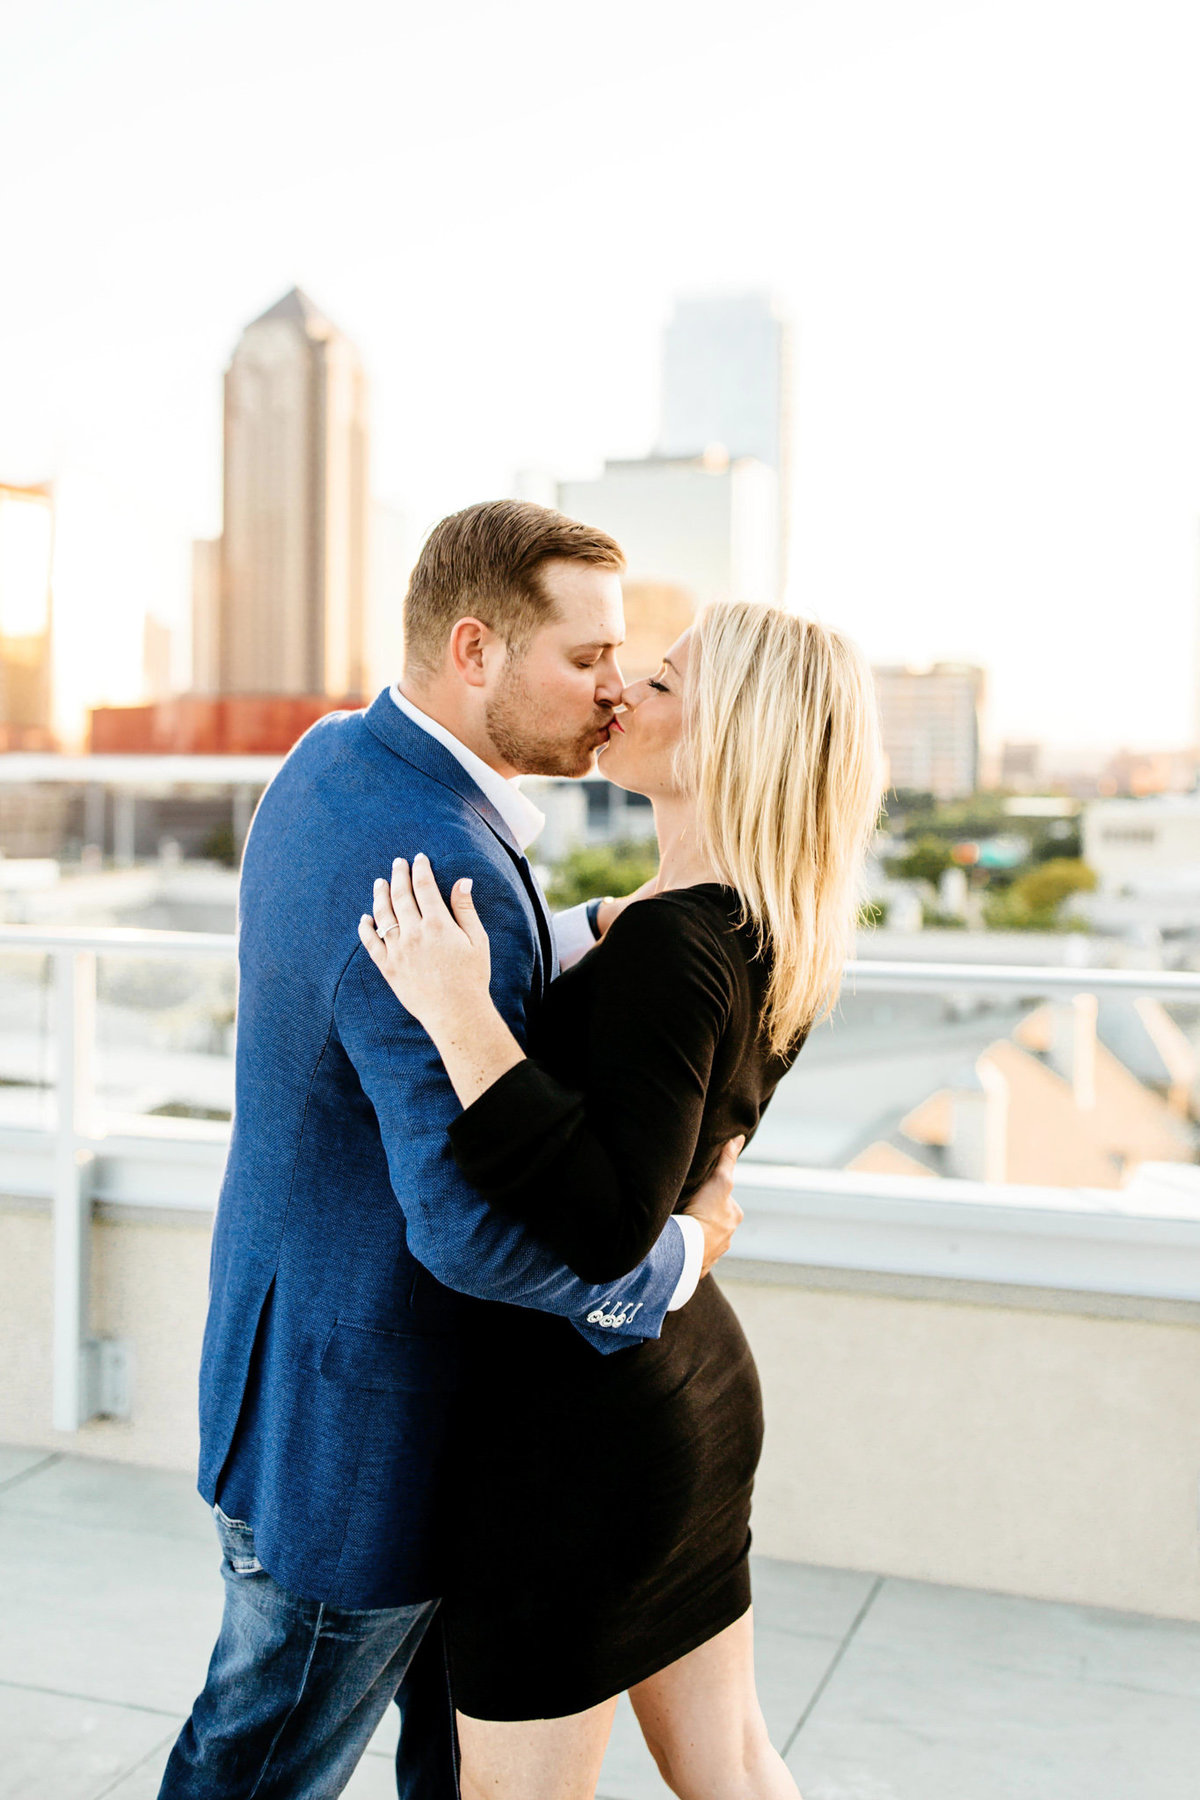 Eric & Megan - Downtown Dallas Rooftop Proposal & Engagement Session-93